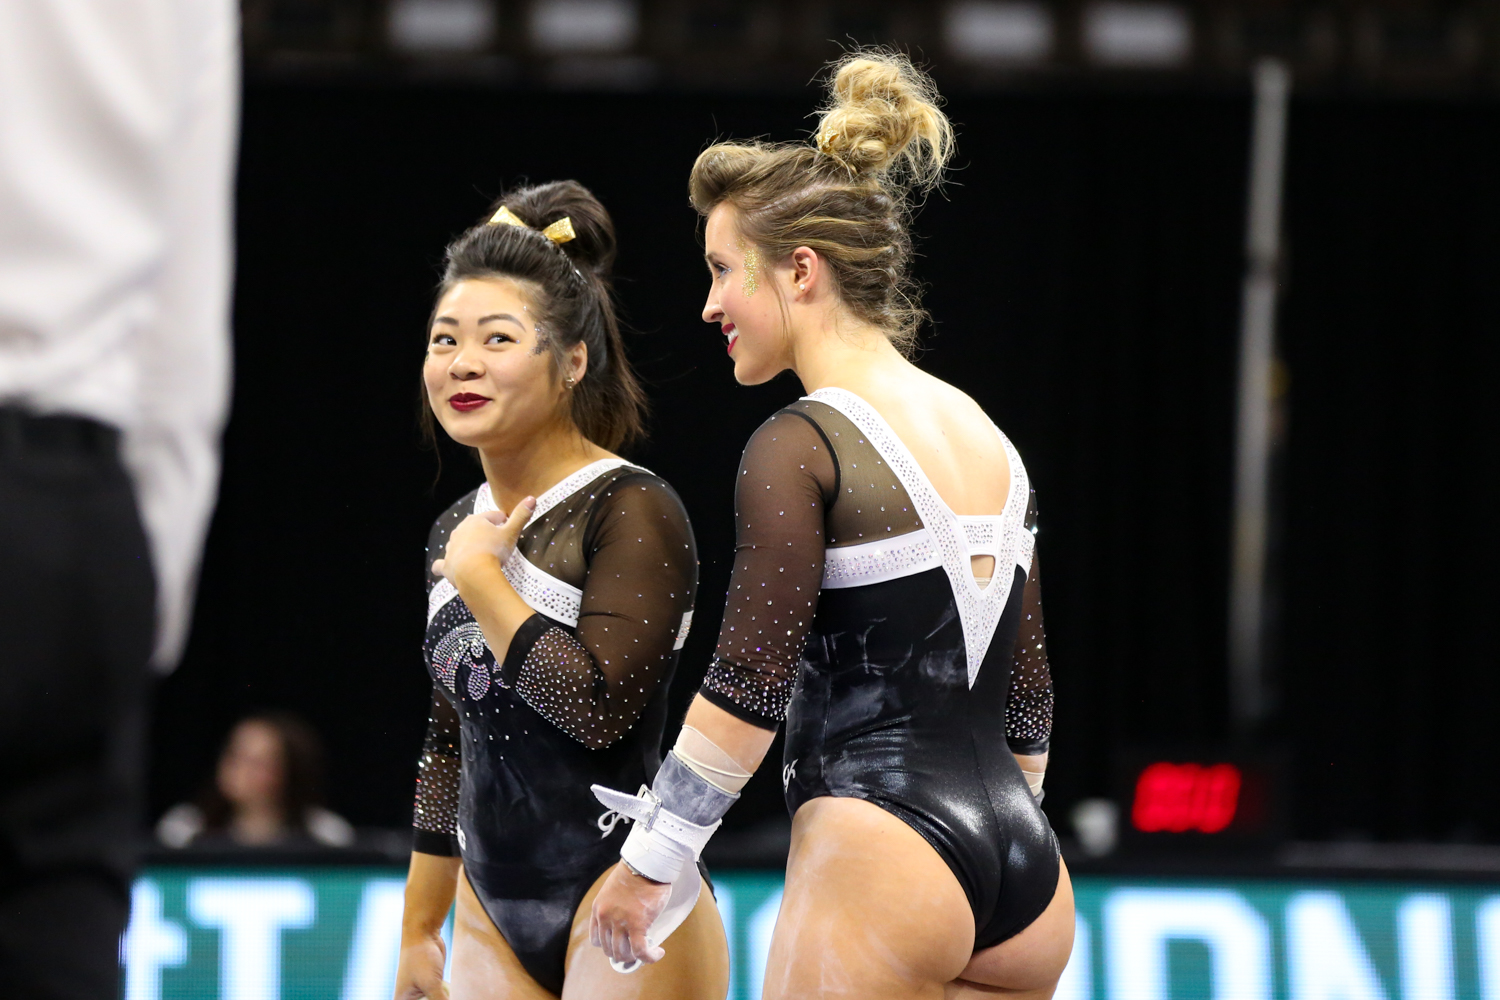 Iowa+Gymnasts+Claire+Kaji+and+Maddie+Kampschroeder+share+a+laugh+during+a+gymnastics+meet+against+Rutgers+on+Saturday%2C+Jan.+26%2C+2019.+The+Hawkeyes+defeated+the+Scarlet+Knights+194.575+to+191.675.+